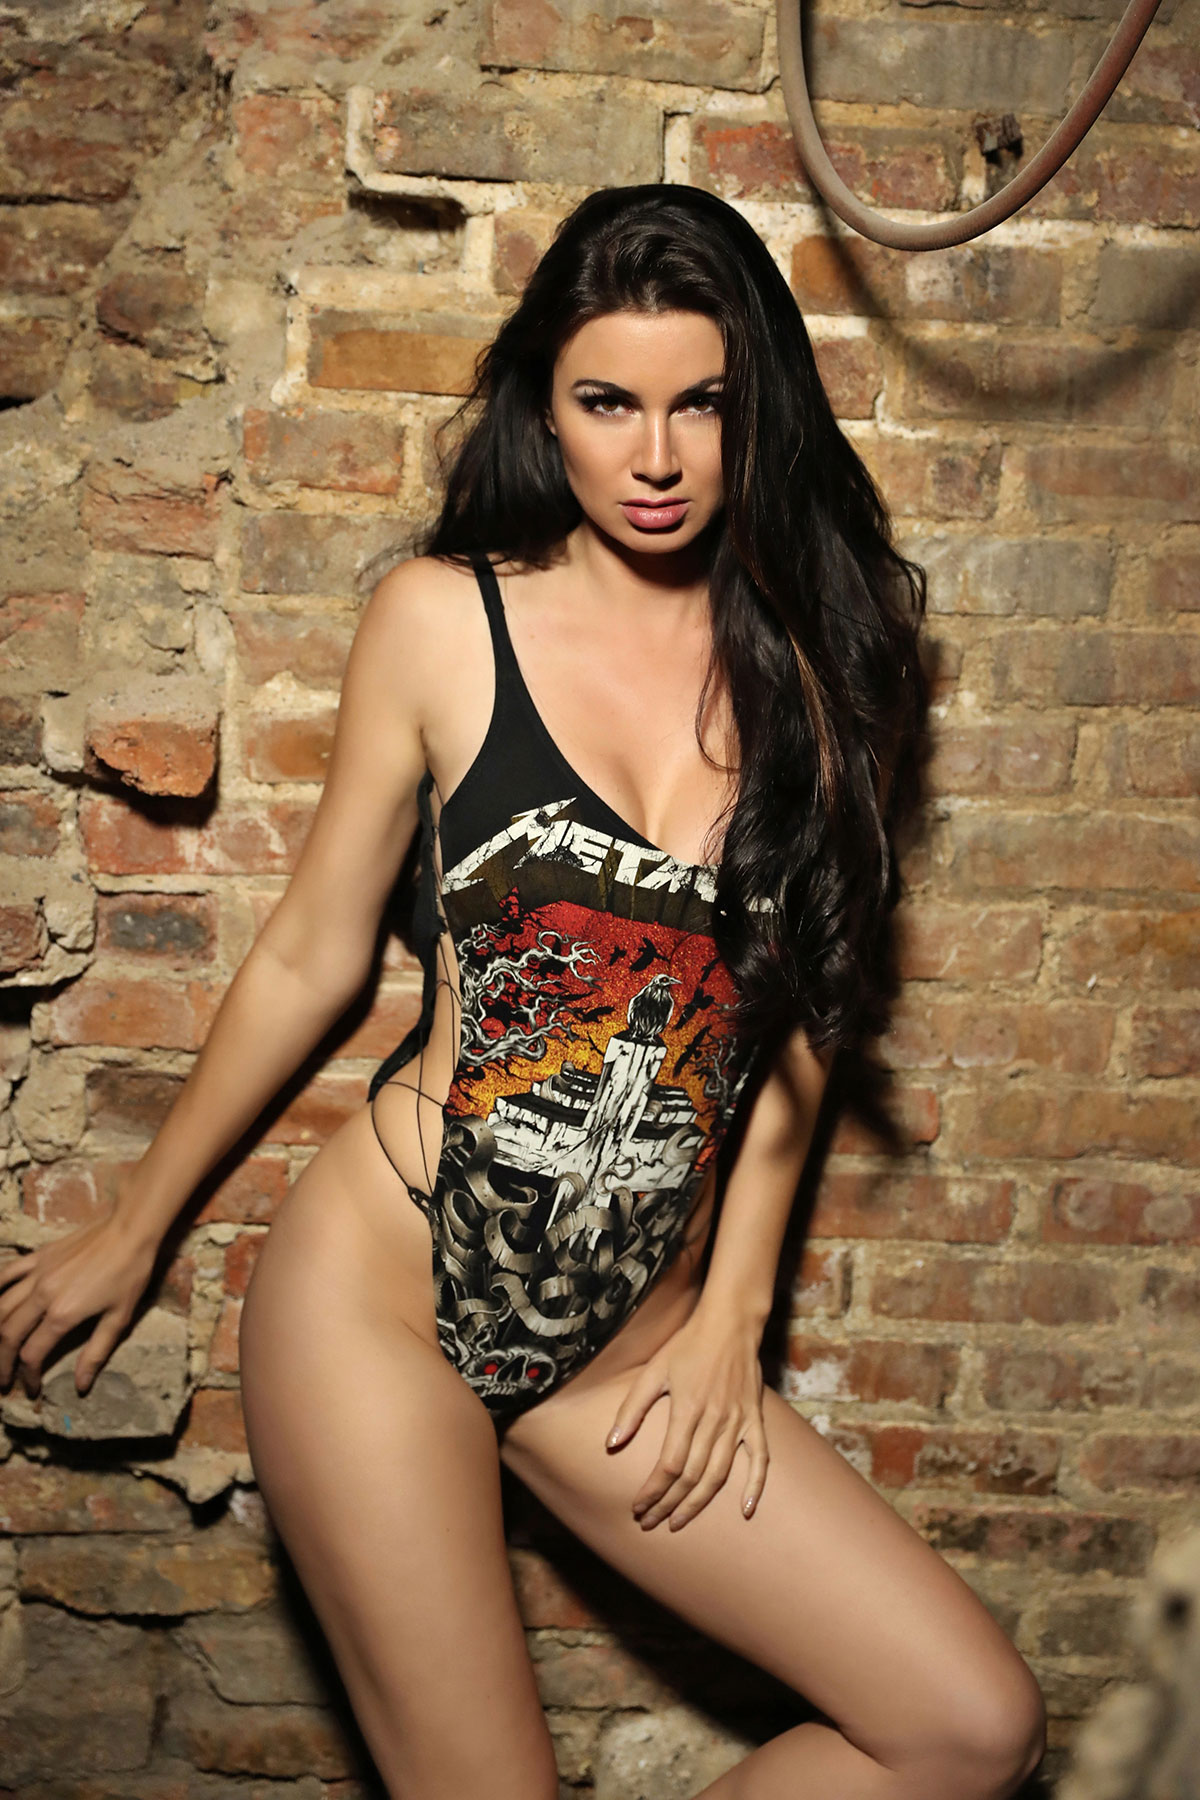 Auto Express Credit >> April Rose's stone cold… SEXY photo shoot! | 97.9 The Loop ...